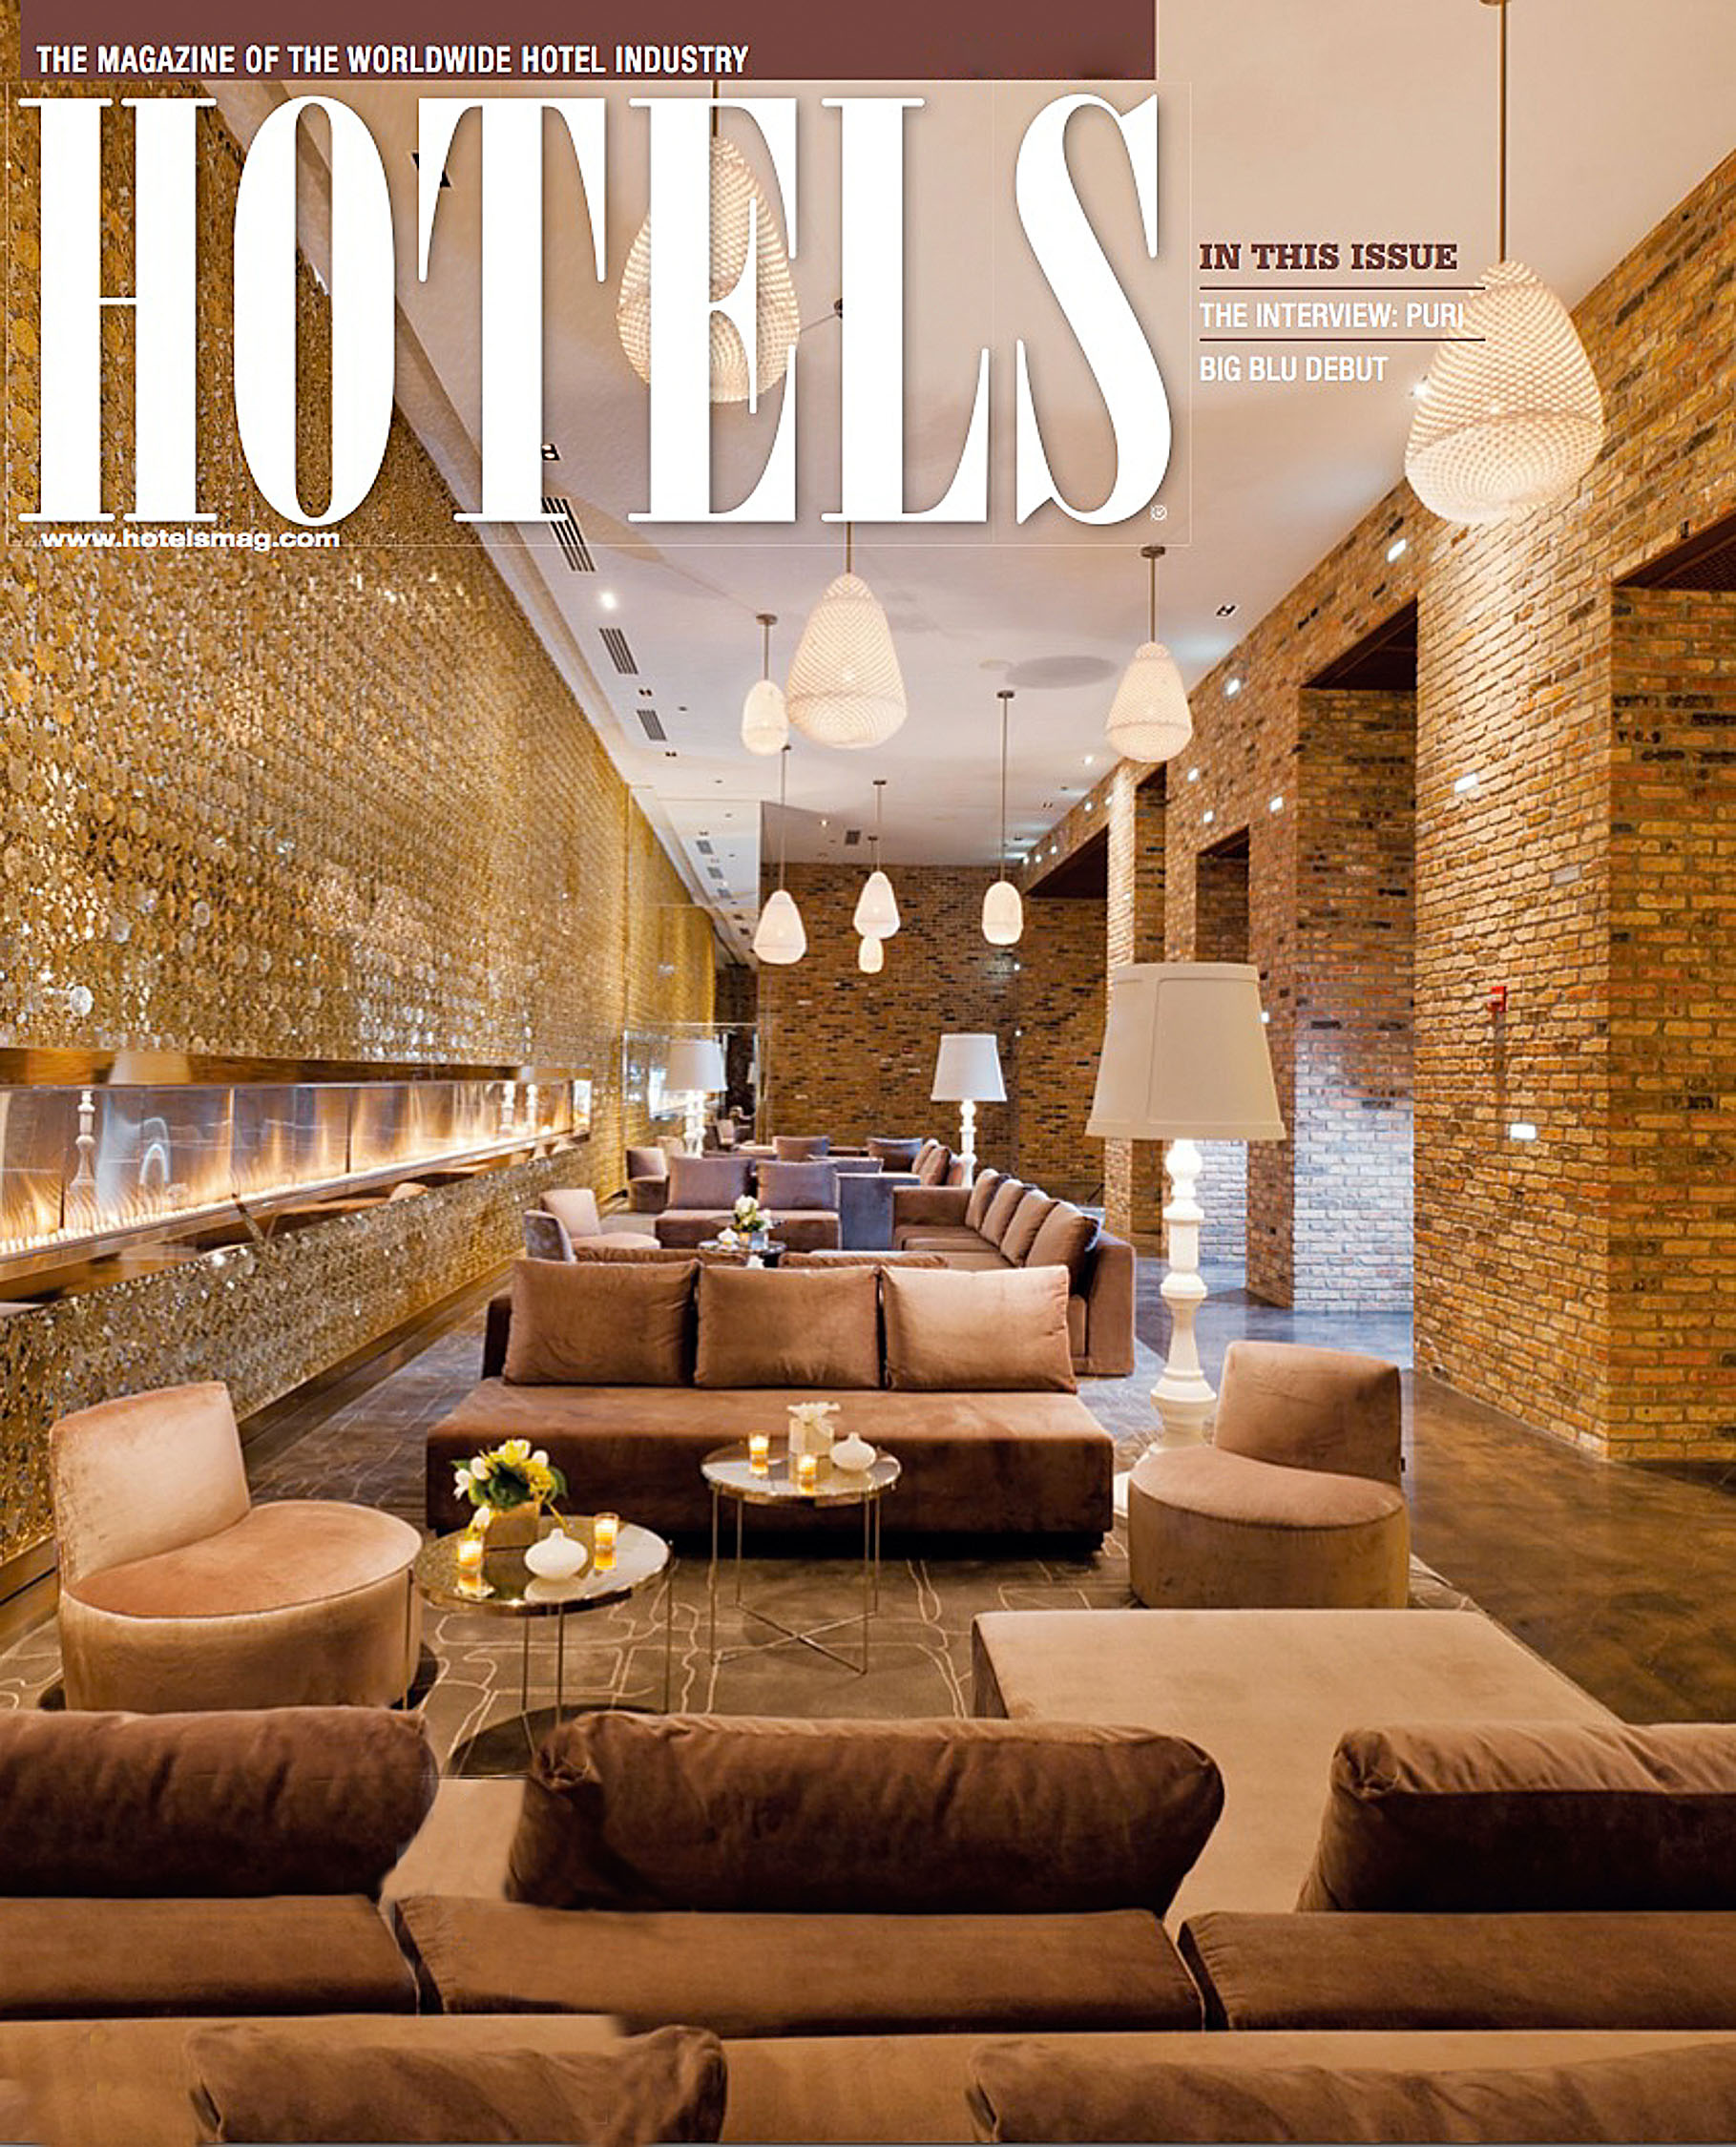 Radisson Blue hotel chicago interior magazine cover